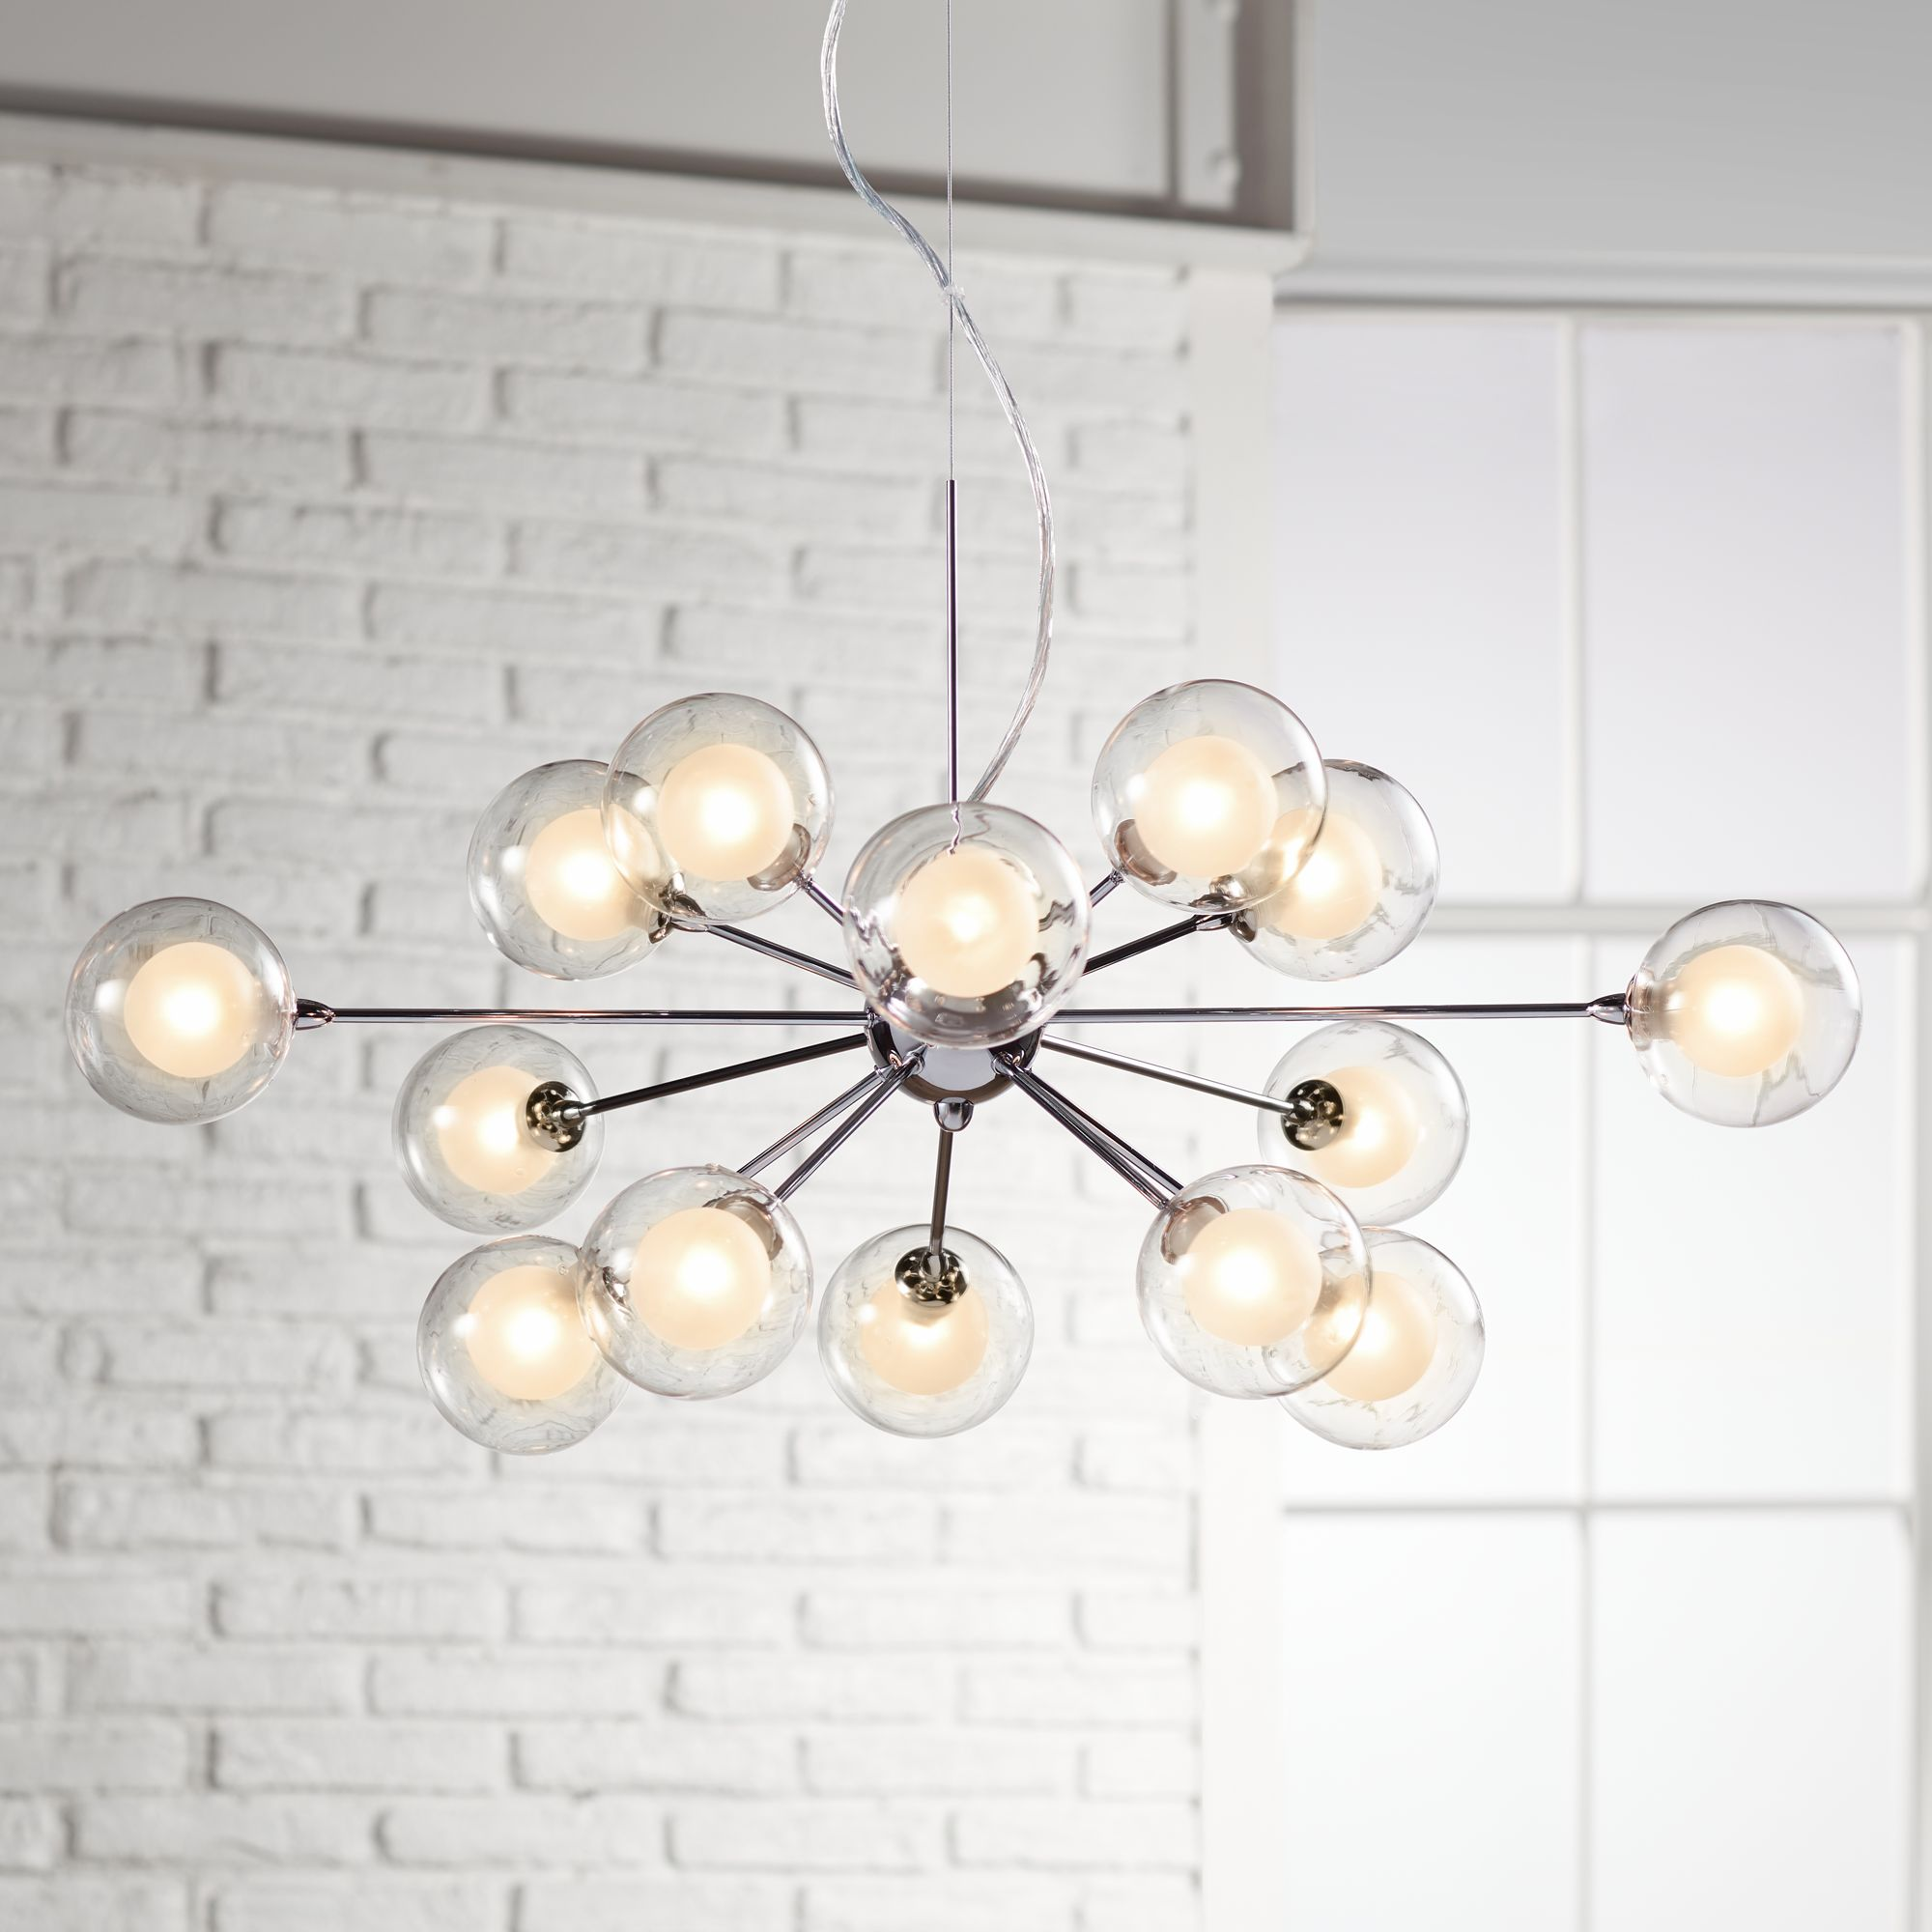 Superieur Possini Euro Design Spheres 15 Light Glass Pendant